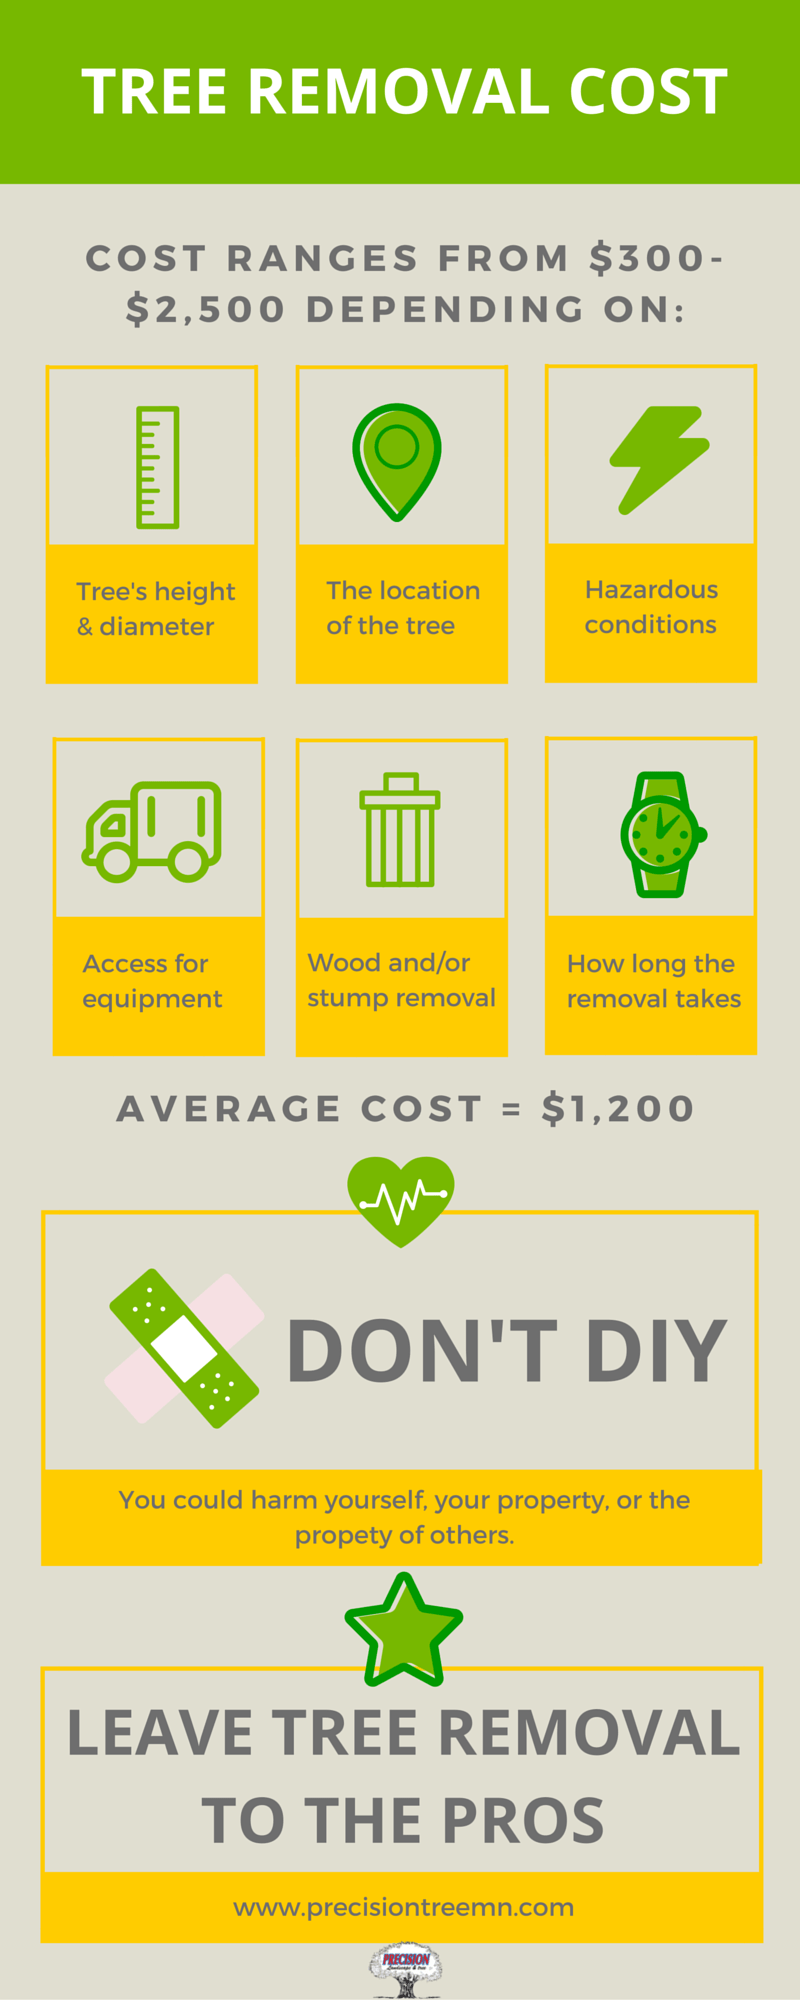 The Average Cost Of Tree Removal Services Tips Twin Cities Tree Care Precision Landscape Tree Mn